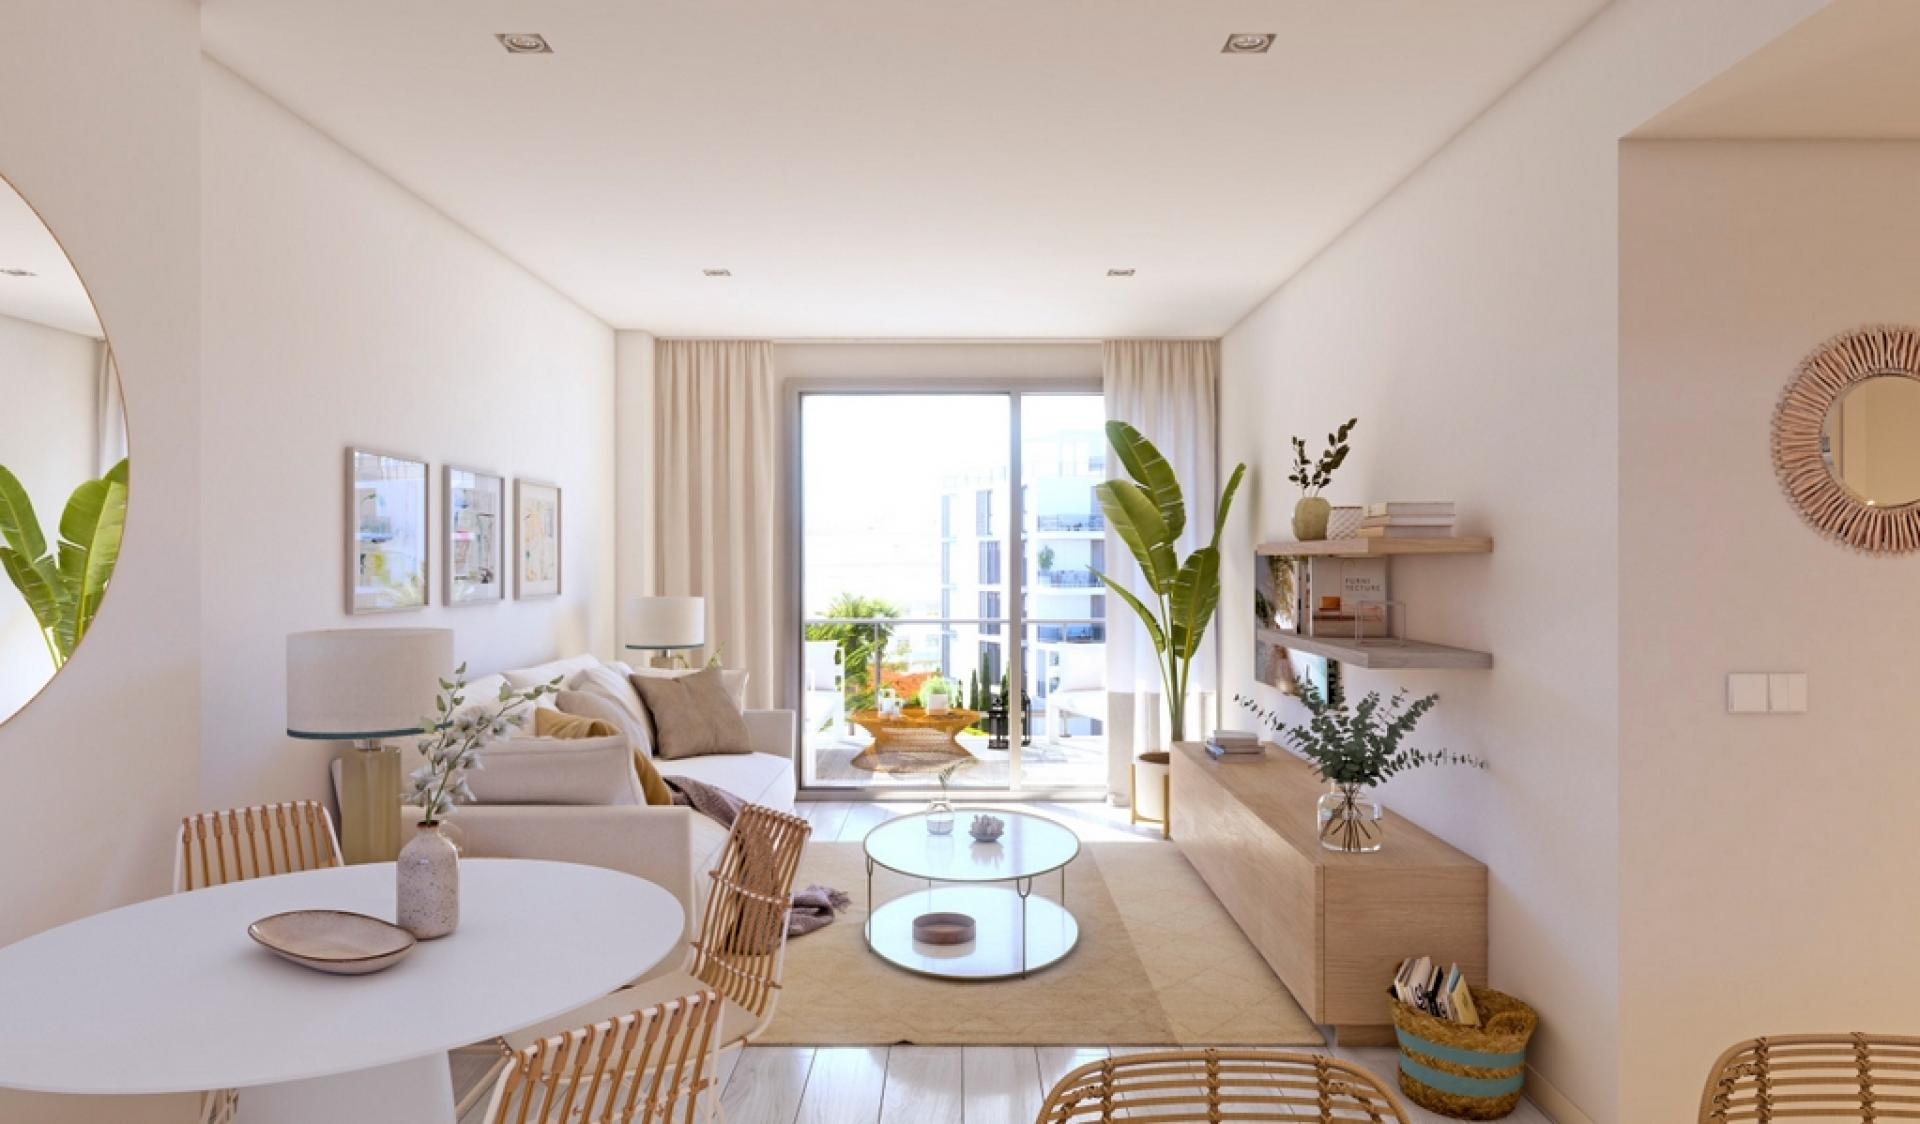 Marina Real - new flats for sale in Denia